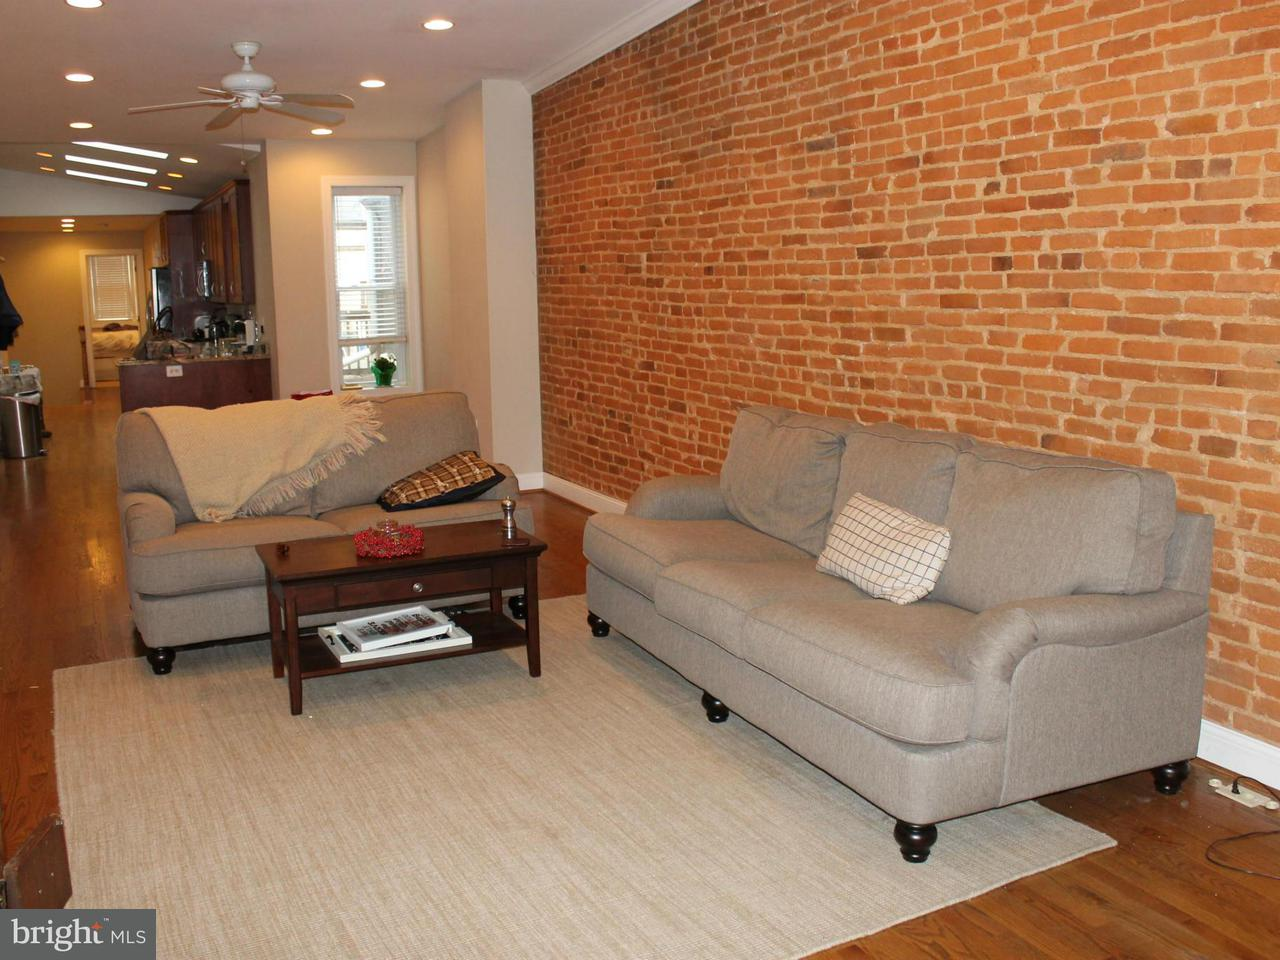 Other Residential for Rent at 1301 Light St Baltimore, Maryland 21230 United States